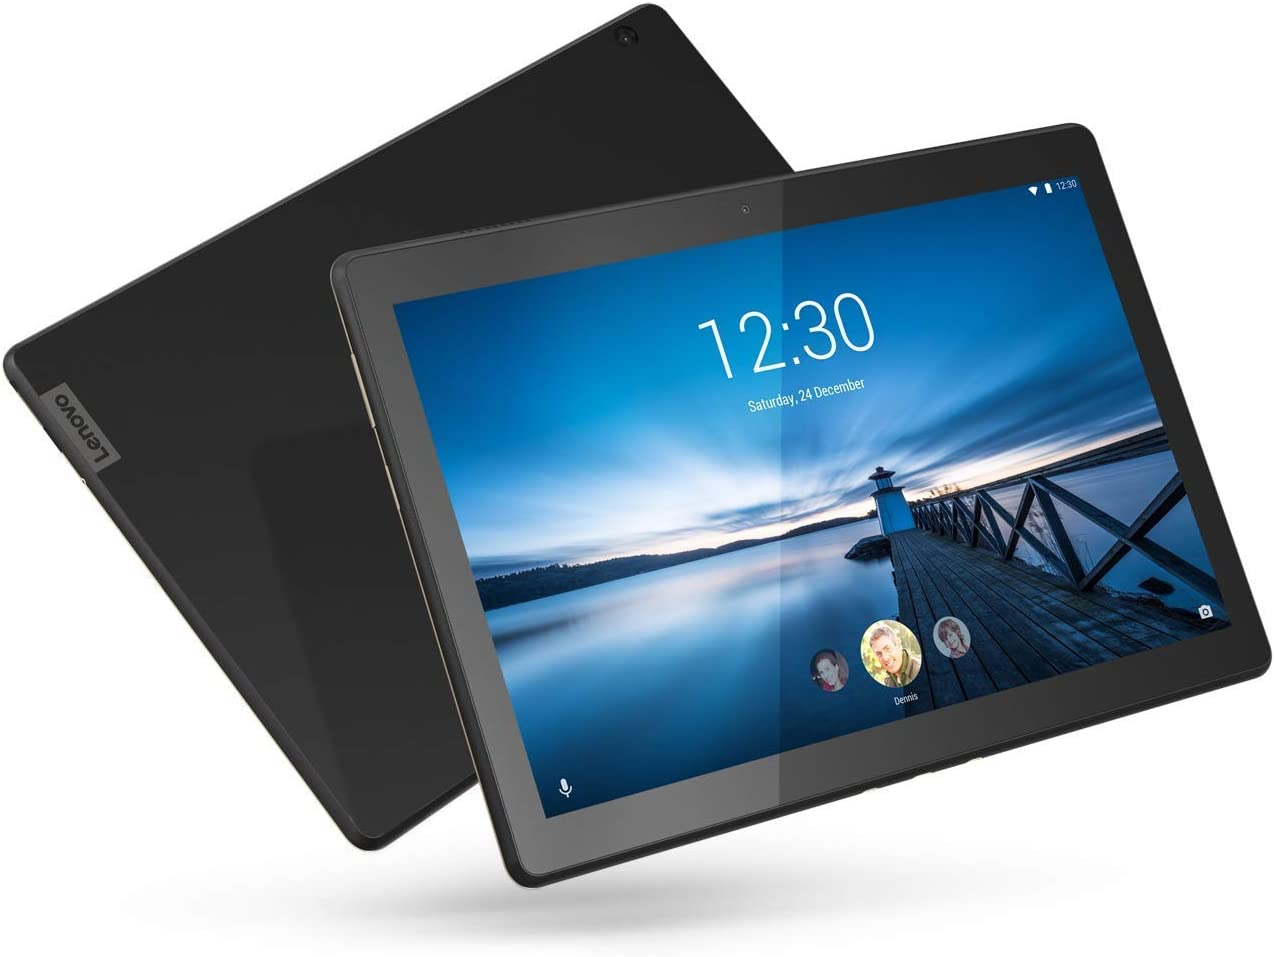 """Lenovo Smart Tab M10 10.1"""" Android Tablet, Alexa-Enabled Smart Device with Smart Dock Featuring 2 Dolby Atmos Speakers - 16GB Storage with Alexa Enabled Charging Dock Included (Renewed)"""